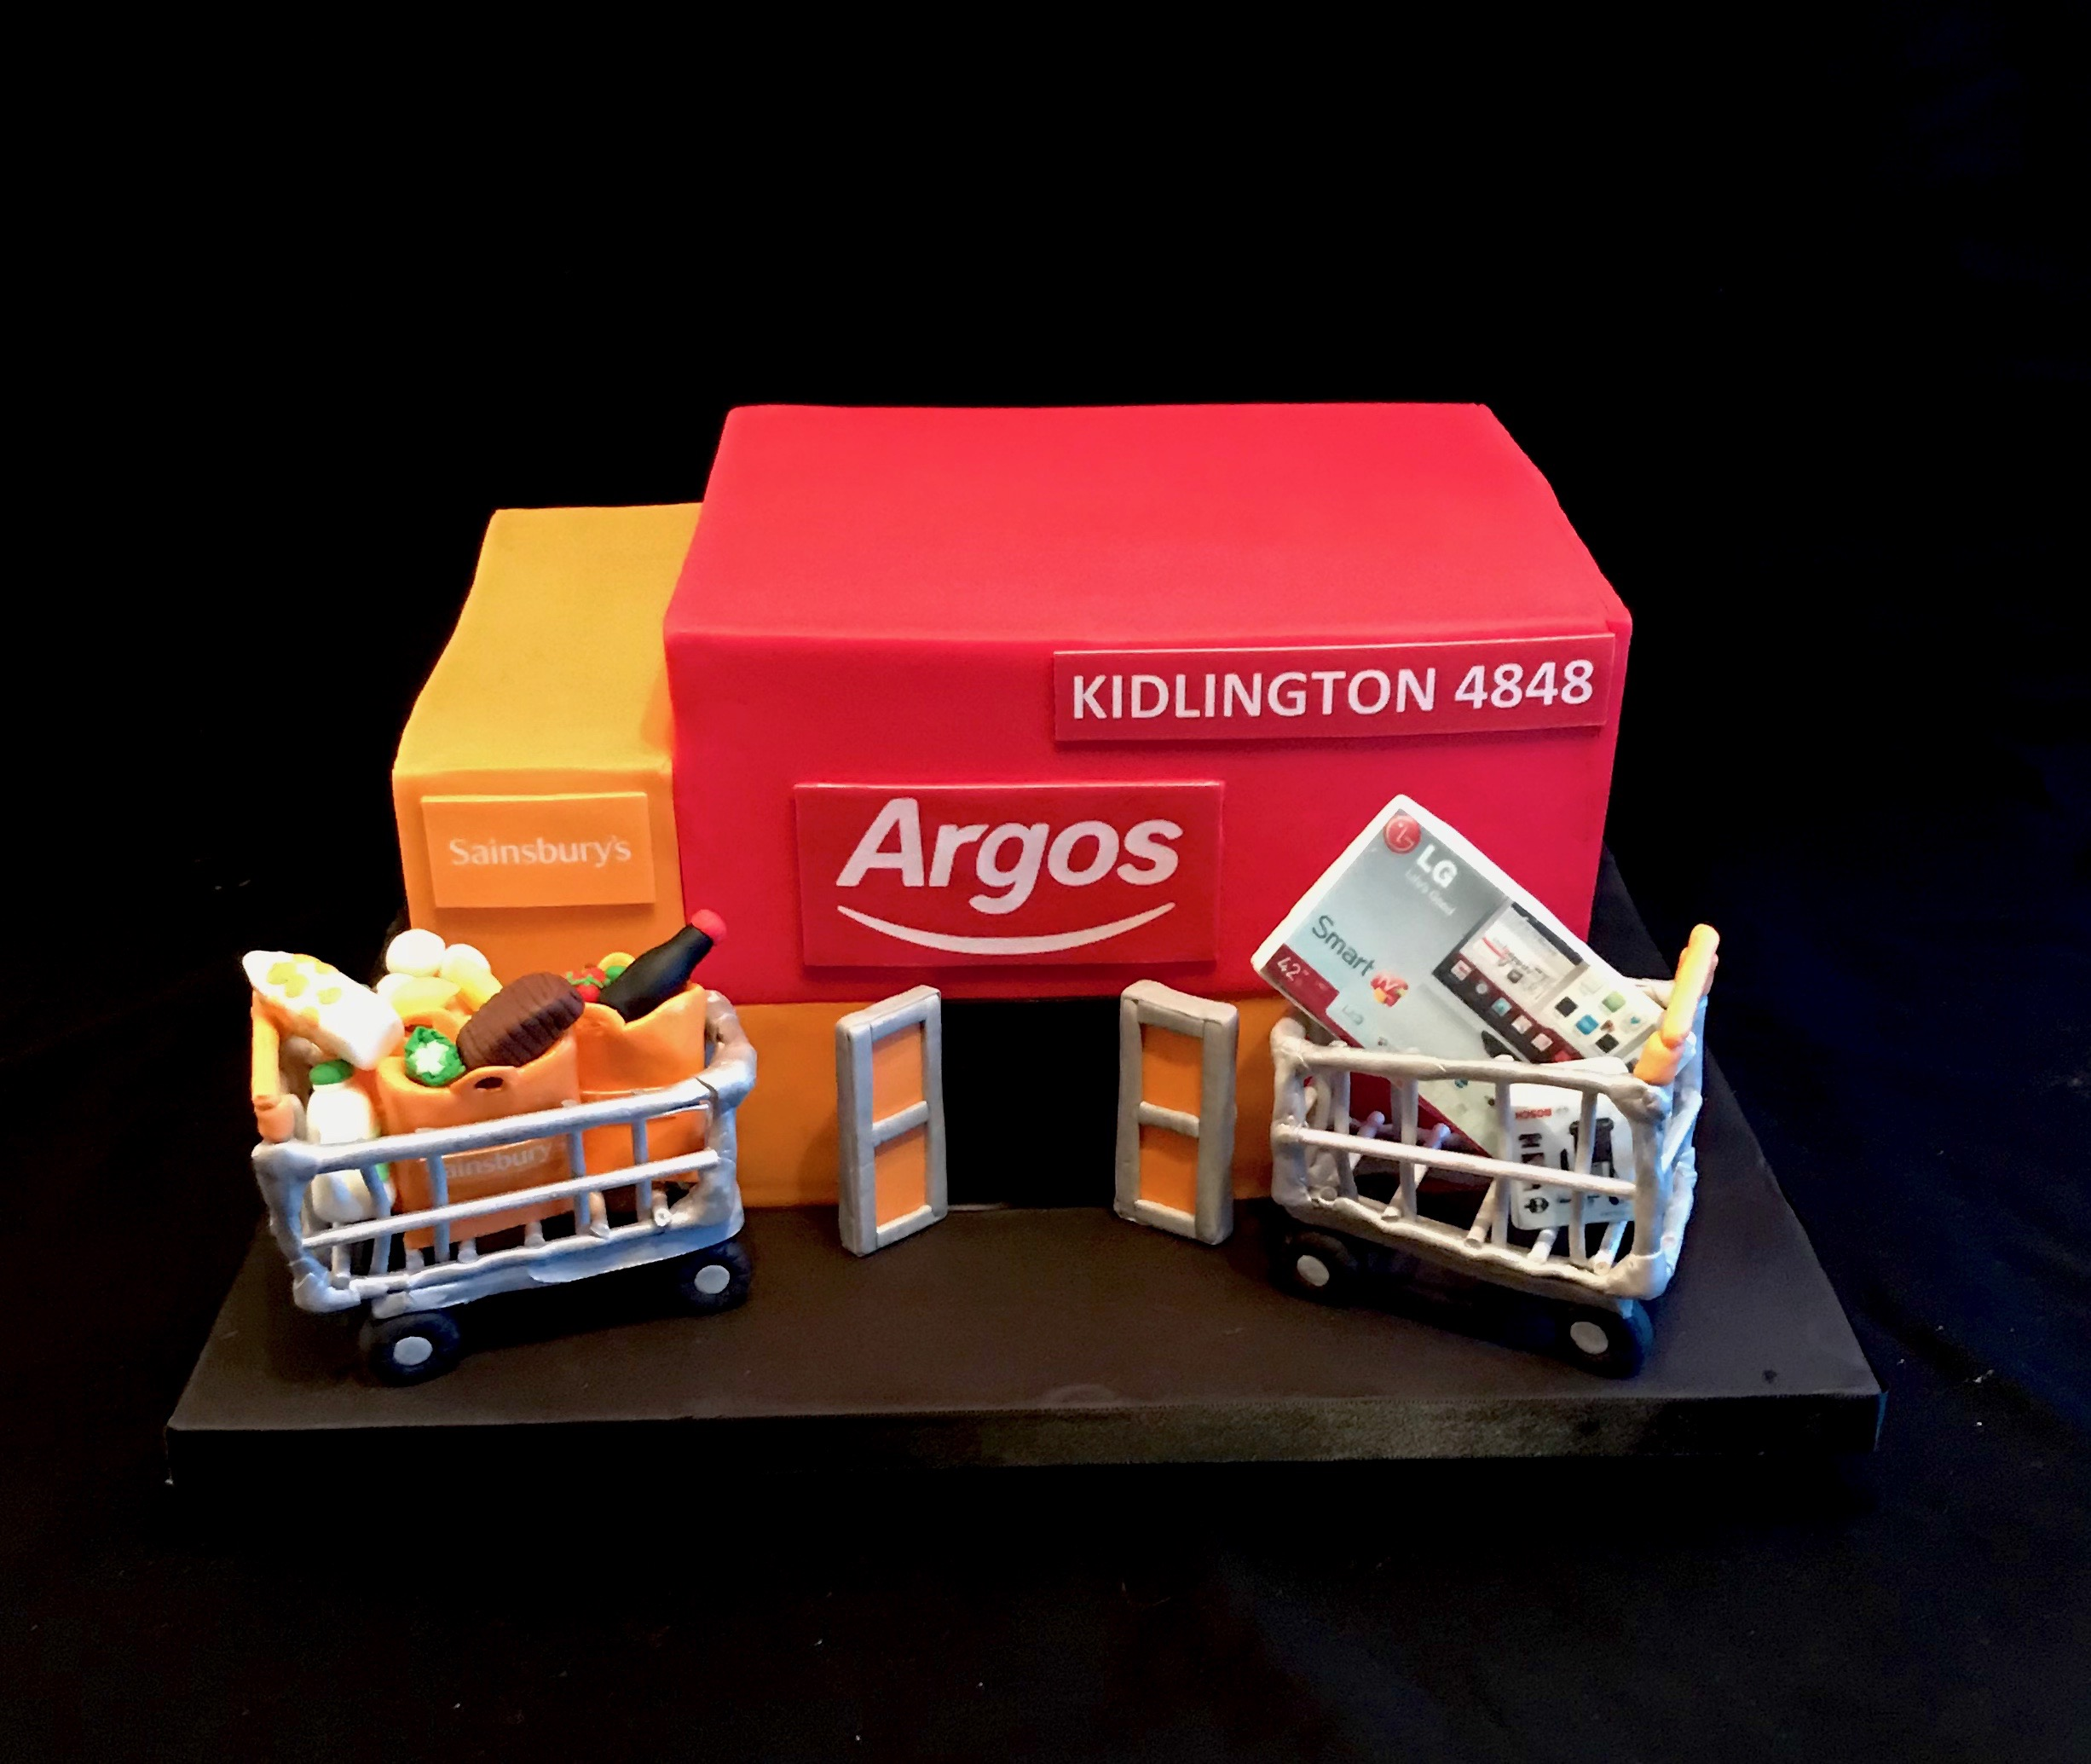 Argos - We were commissioned to make this cake to celebrate the opening of their new store within the Sainsbury's store based in Kidlington.